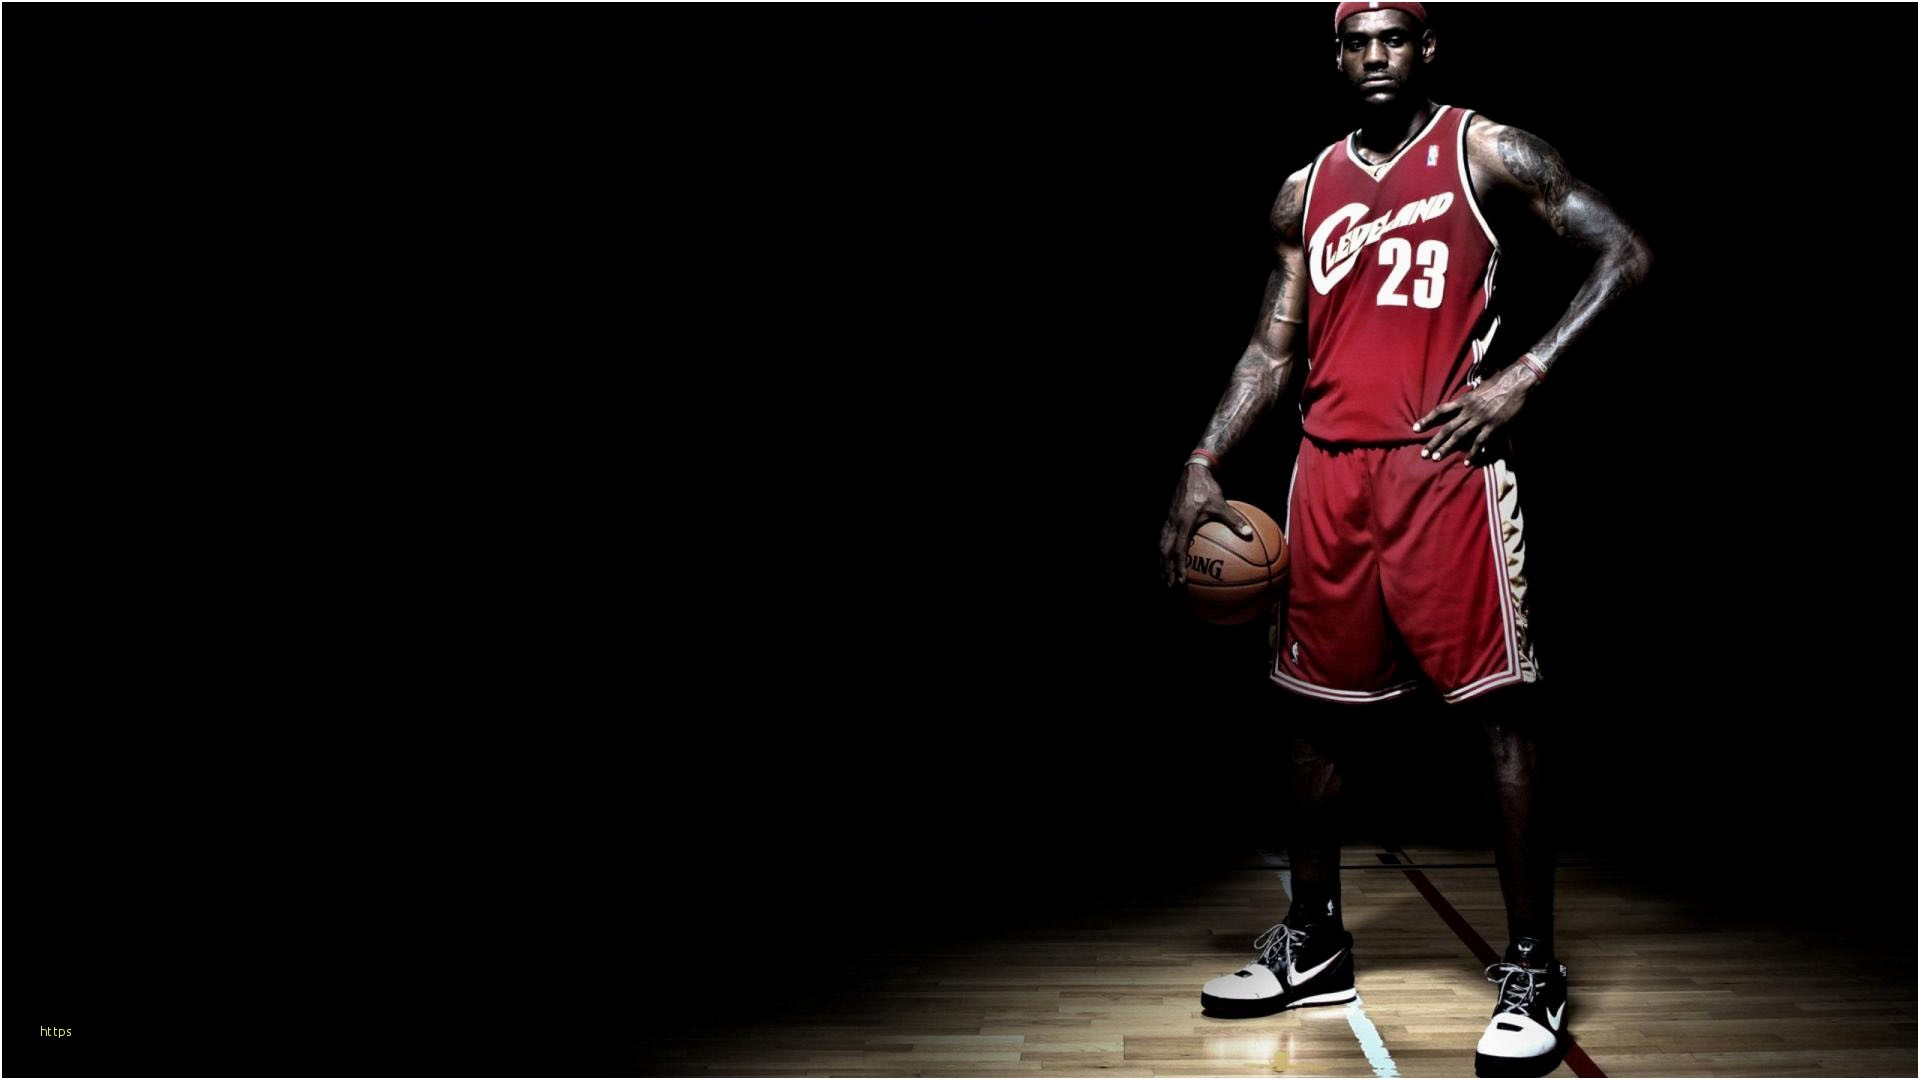 1920x1080 ... Lebron James Wallpaper Hd Luxury Hd Wallpapers Basketball 72 Background  Pictures ...